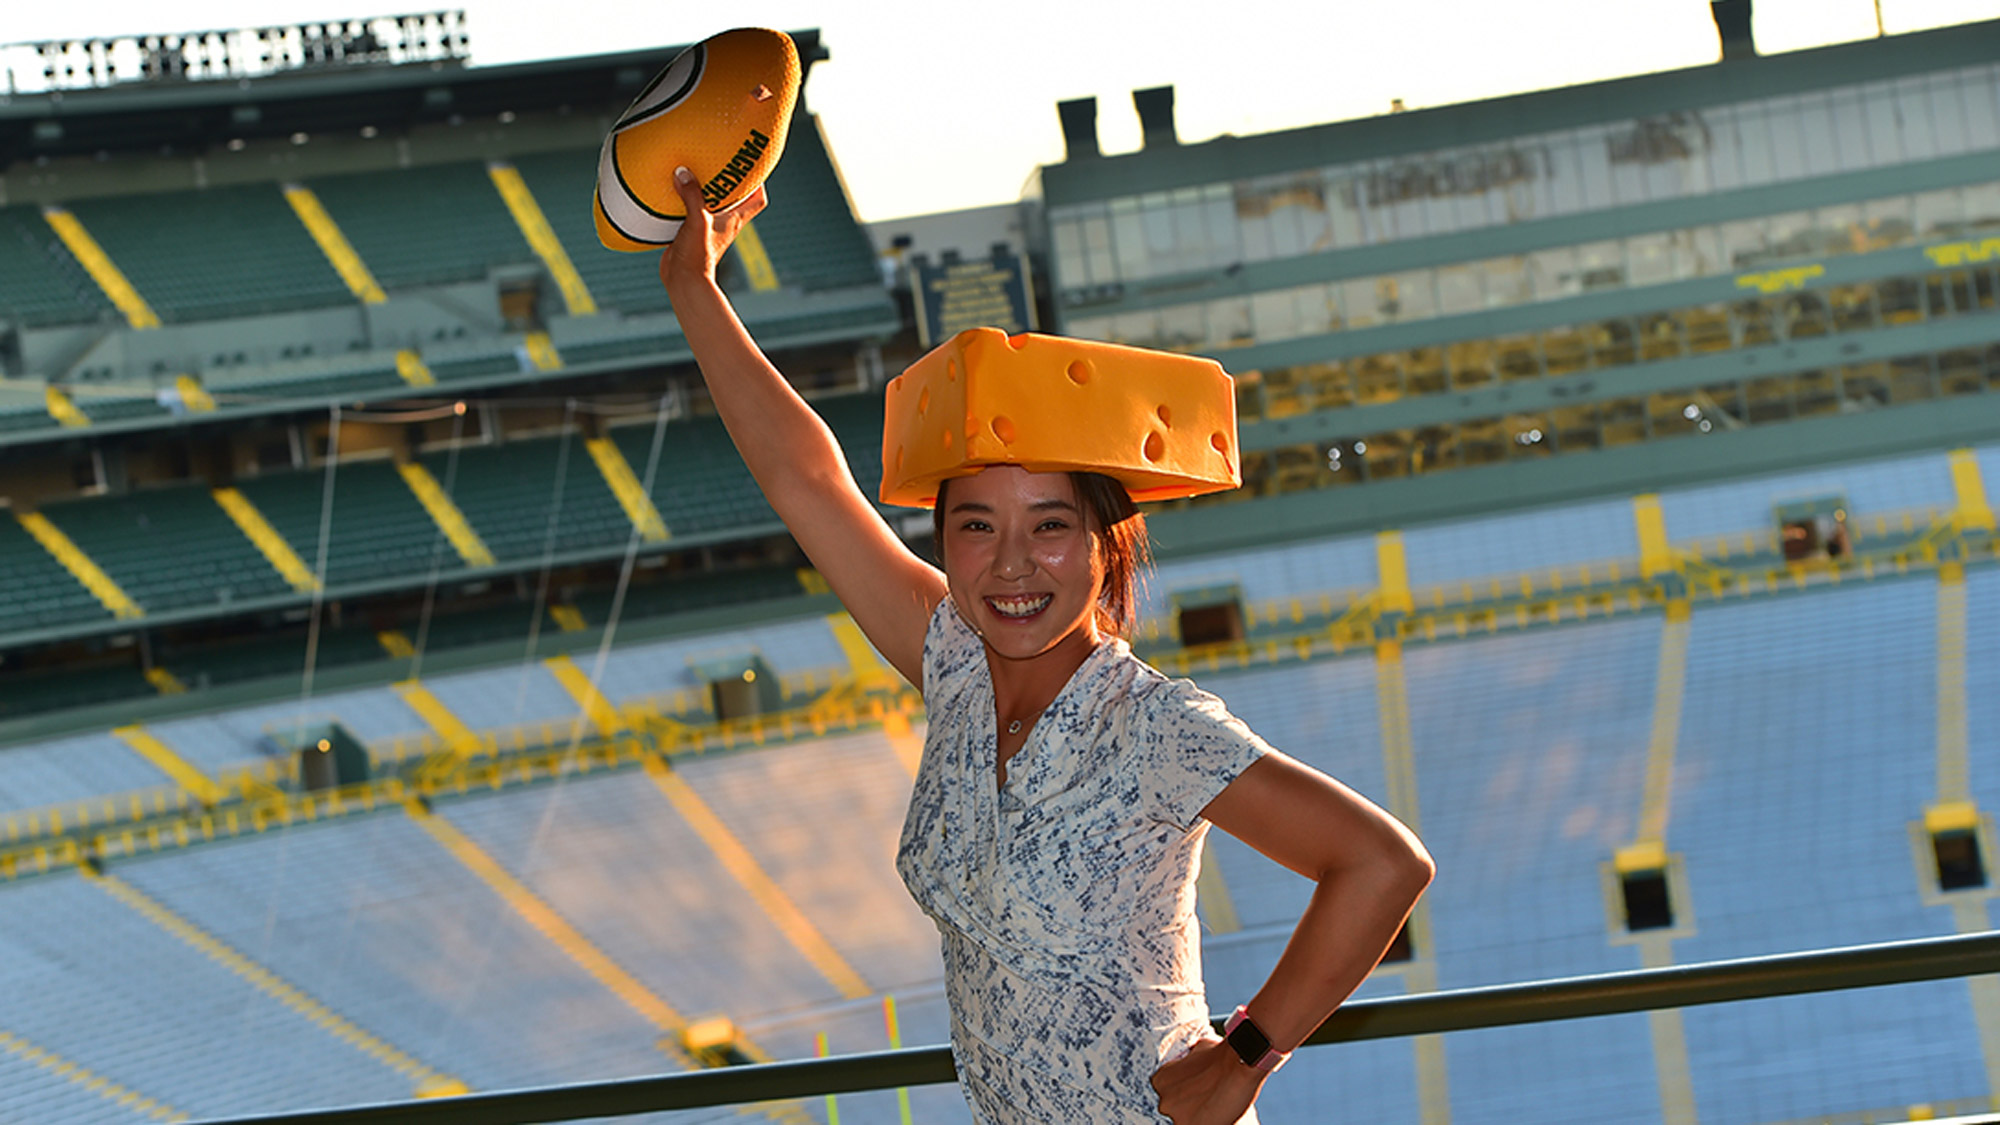 Hee Young Park at Pro Am Party at Lambeau Field